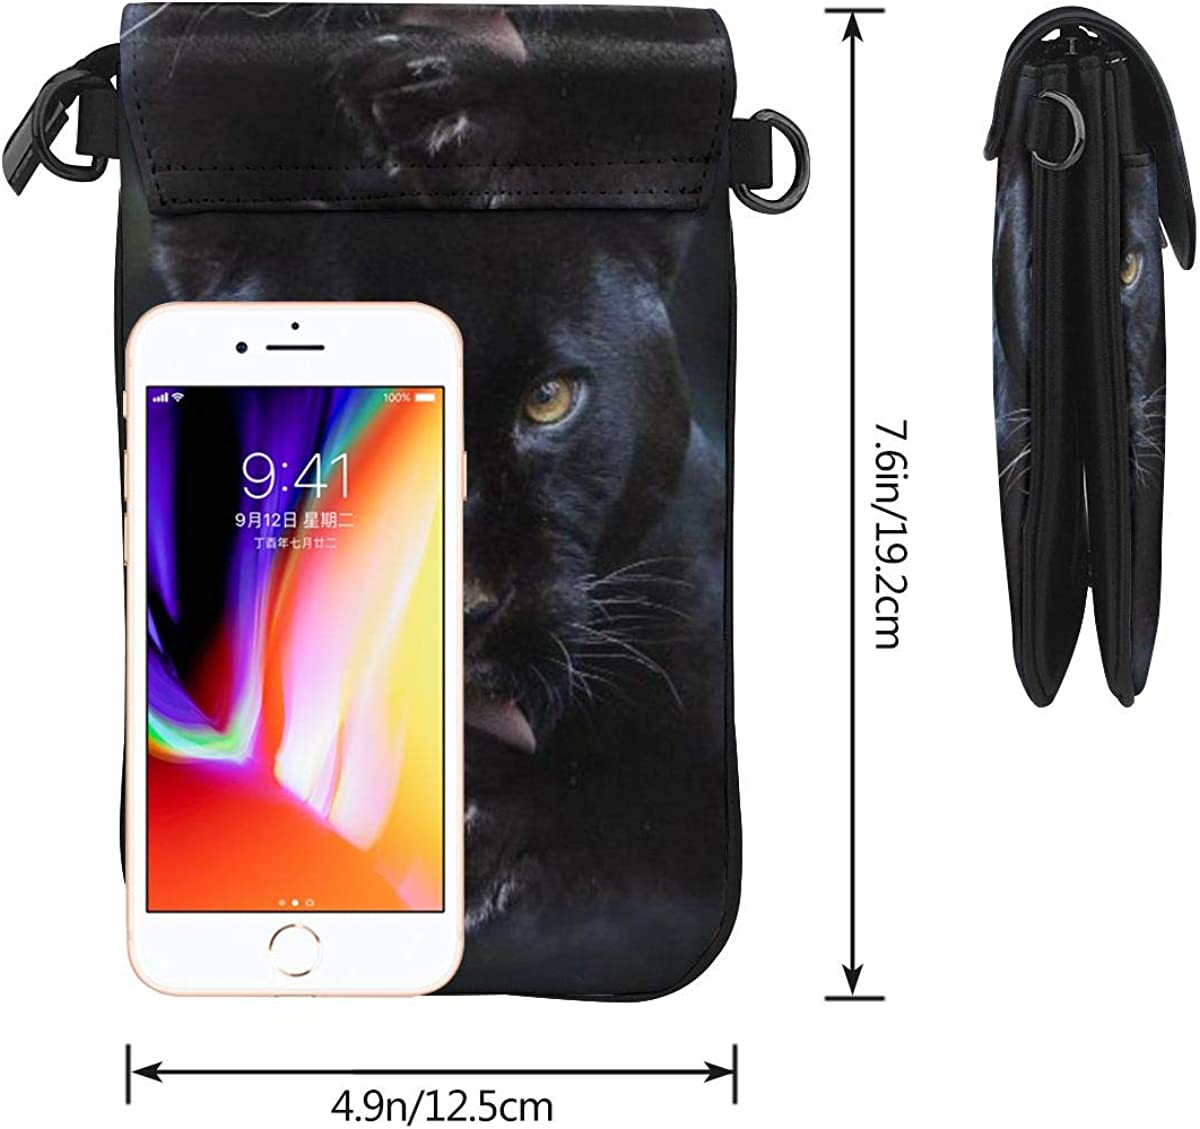 Black Panther Crossbody Cell Phone Purse Shoulder Bag for Women with Card Slots Wallet